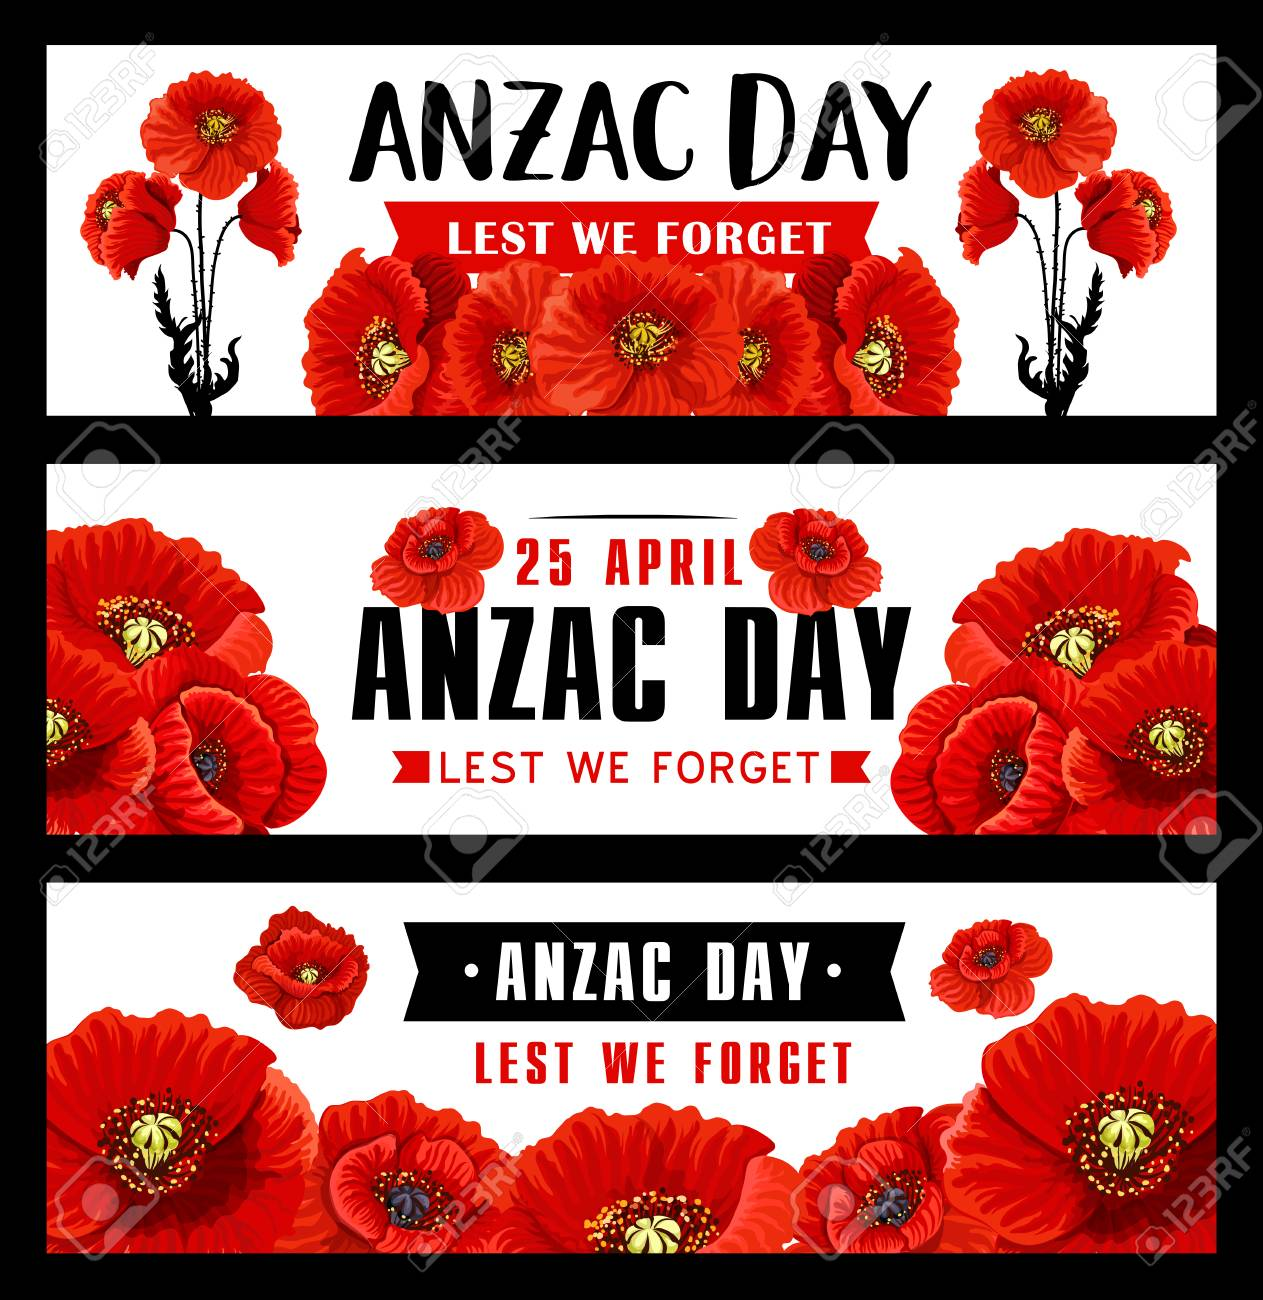 Anzac remembrance day banner with red poppy flower royalty free anzac remembrance day banner with red poppy flower stock vector 93247665 mightylinksfo